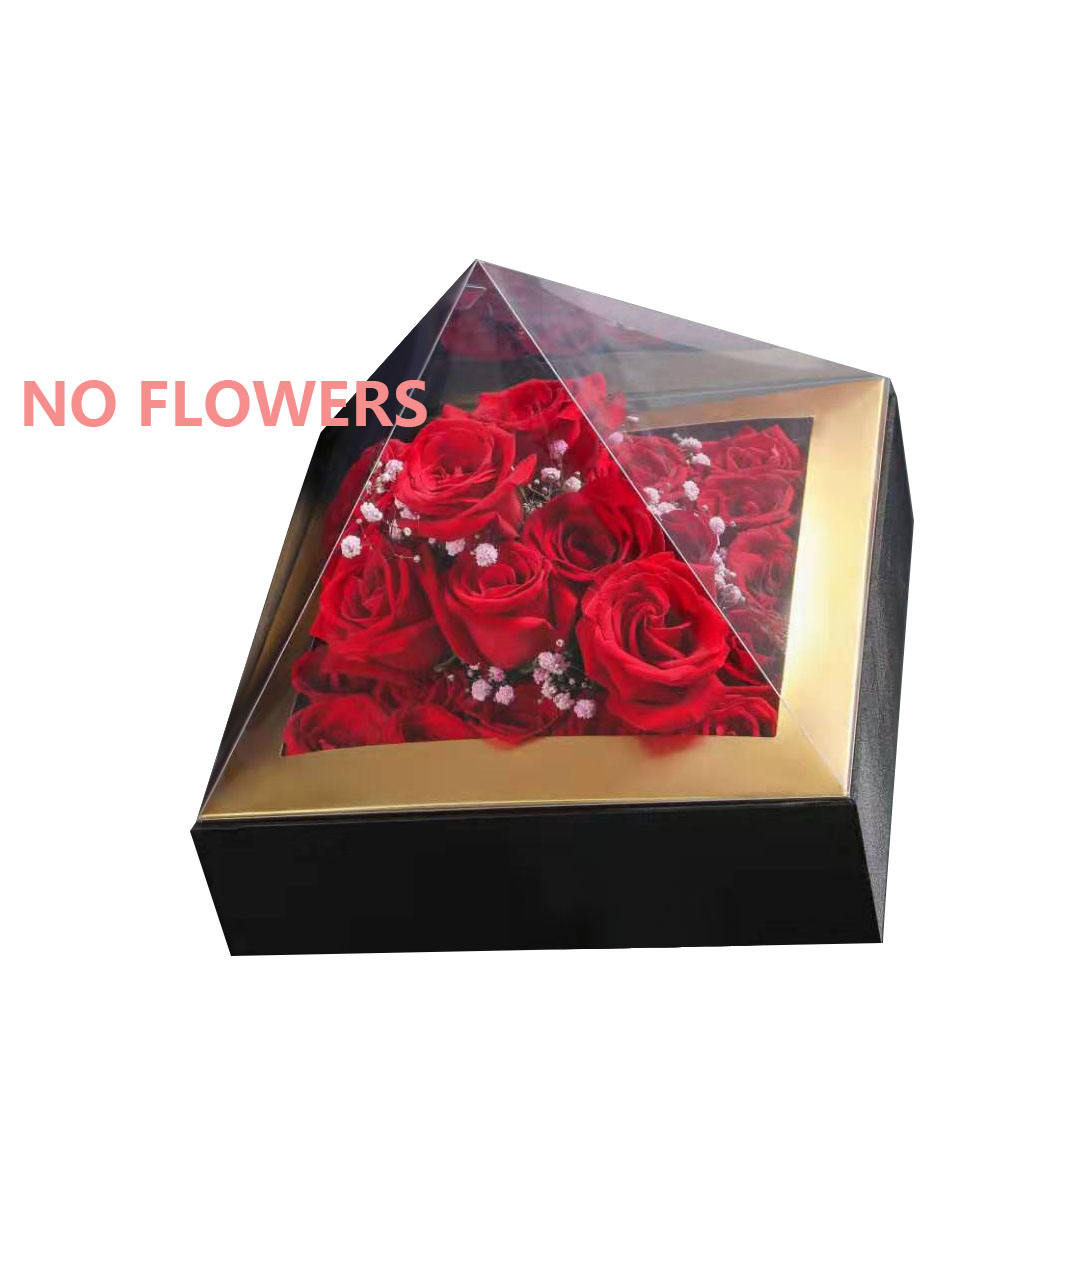 Luxury Pyramid Box Hand Held Packaging Acrylic Transparent High-end Flower Box Gift Box